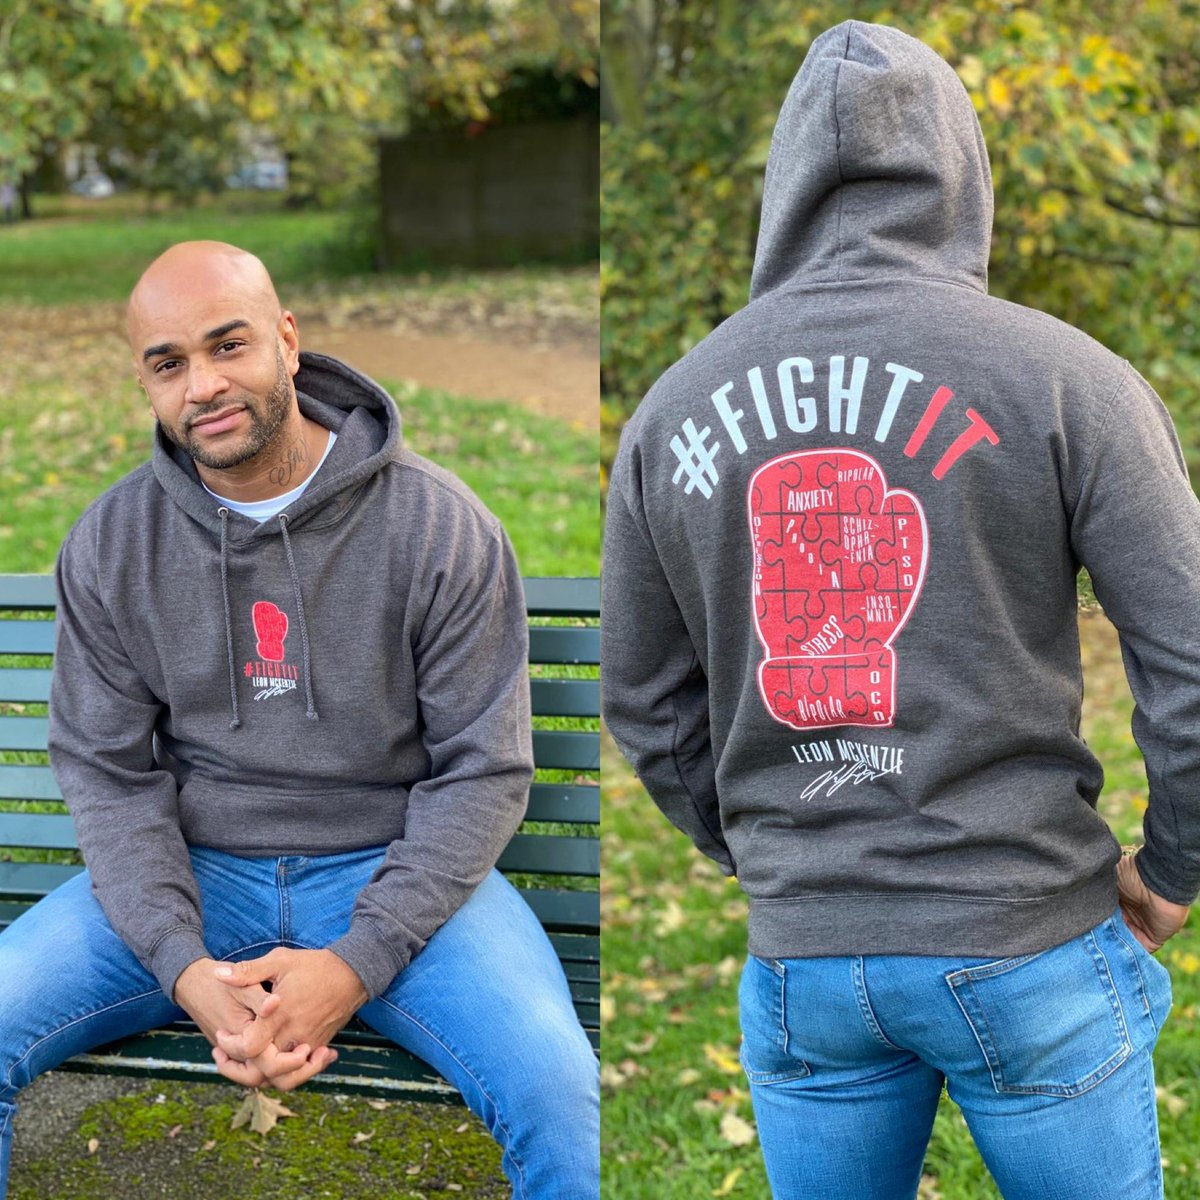 We are so excited to be working with @LeonMckenzie1 in helping him to promote mental health through his fight it brand 👊🏼 keep your eyes peeled these will be on sale from Wednesday 🙌🏼   #MondayMotivation #MentalHealthAwareness #fightit #merchonline #iconsonly https://t.co/2NzENulVLH